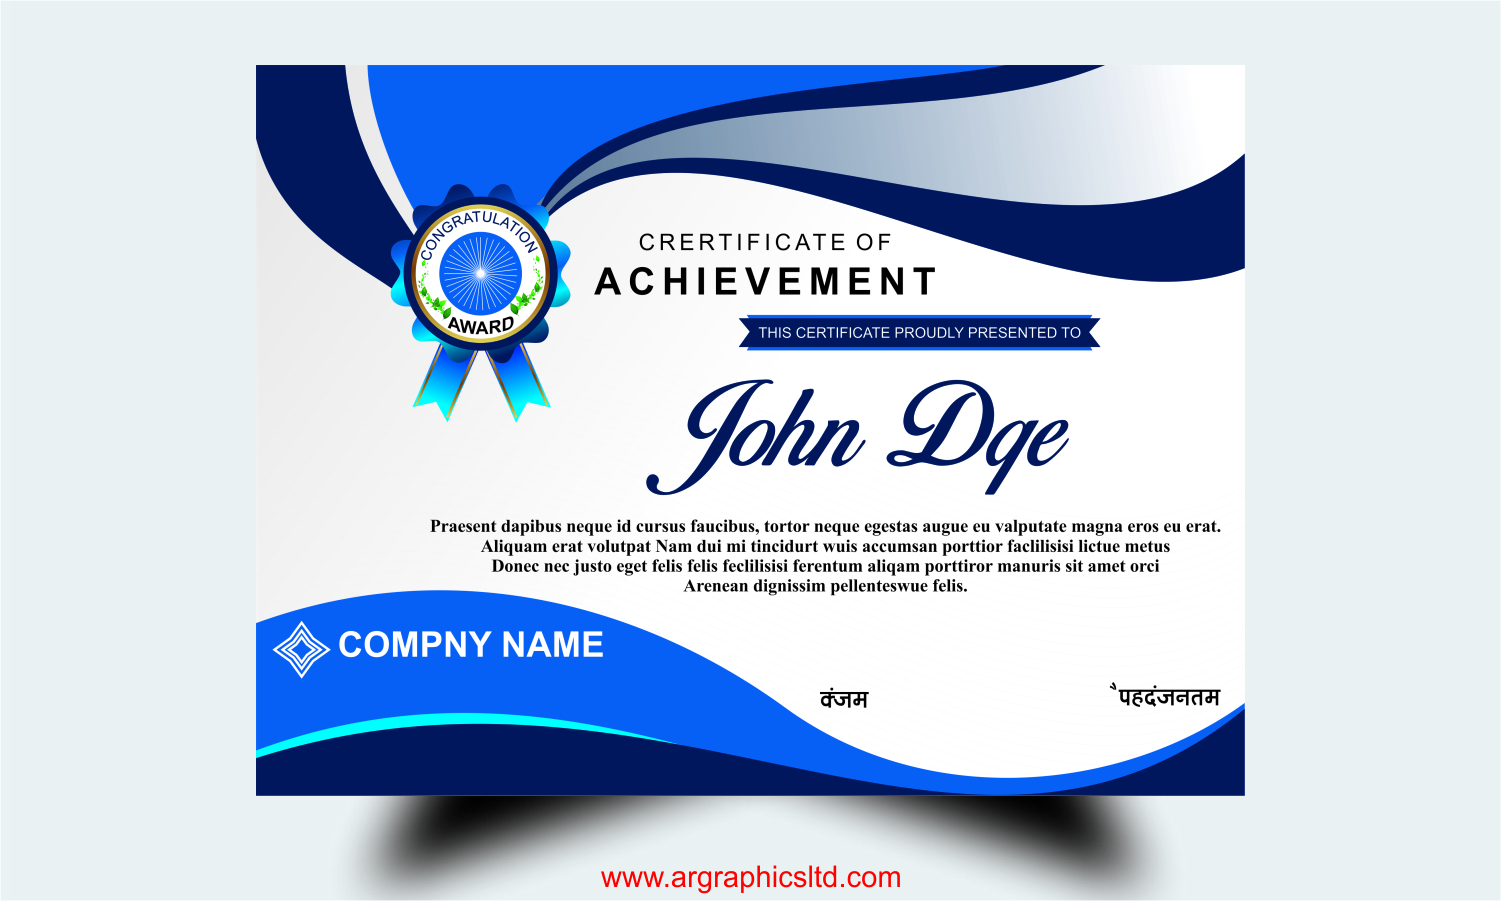 Certificate Design Format Certificate Design Cdr Certificate Design All Free Download Certificate Graphic Design Ar Graphics Free Cdr Psd Websites For Graphic Design